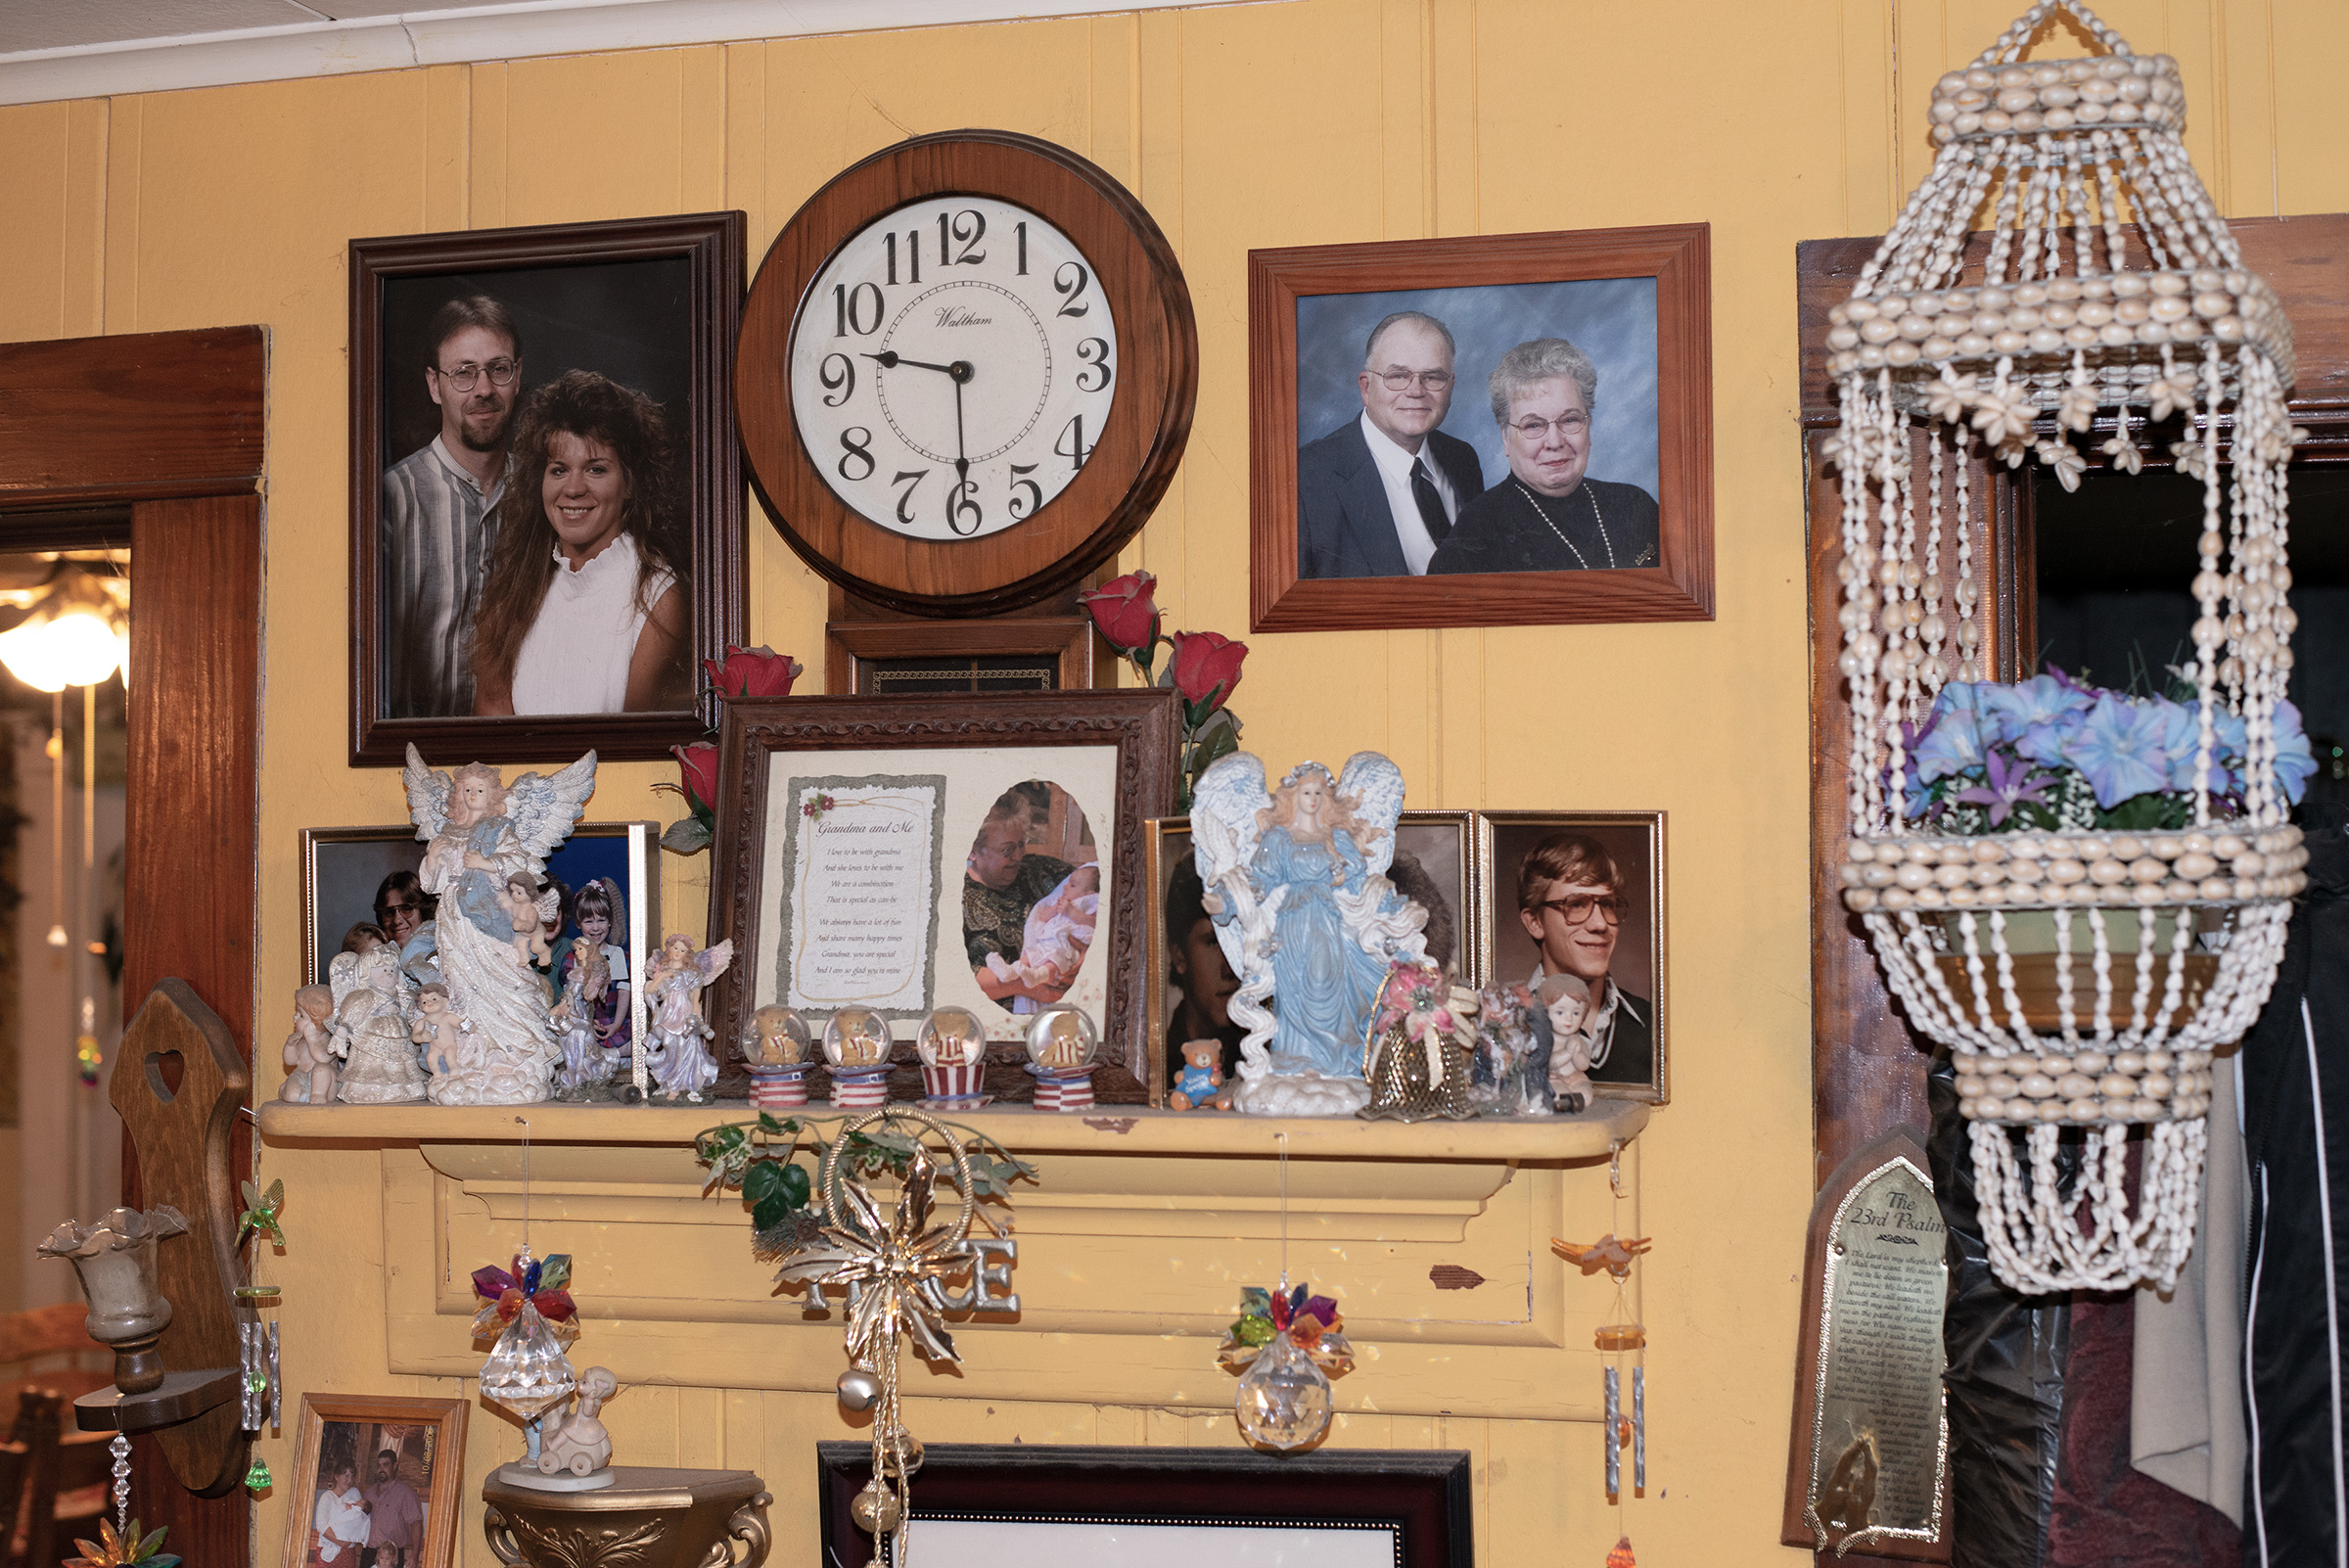 The Rieckmann's mantle in their home in Fremont, Wisconsin, on Nov. 20, 2019.